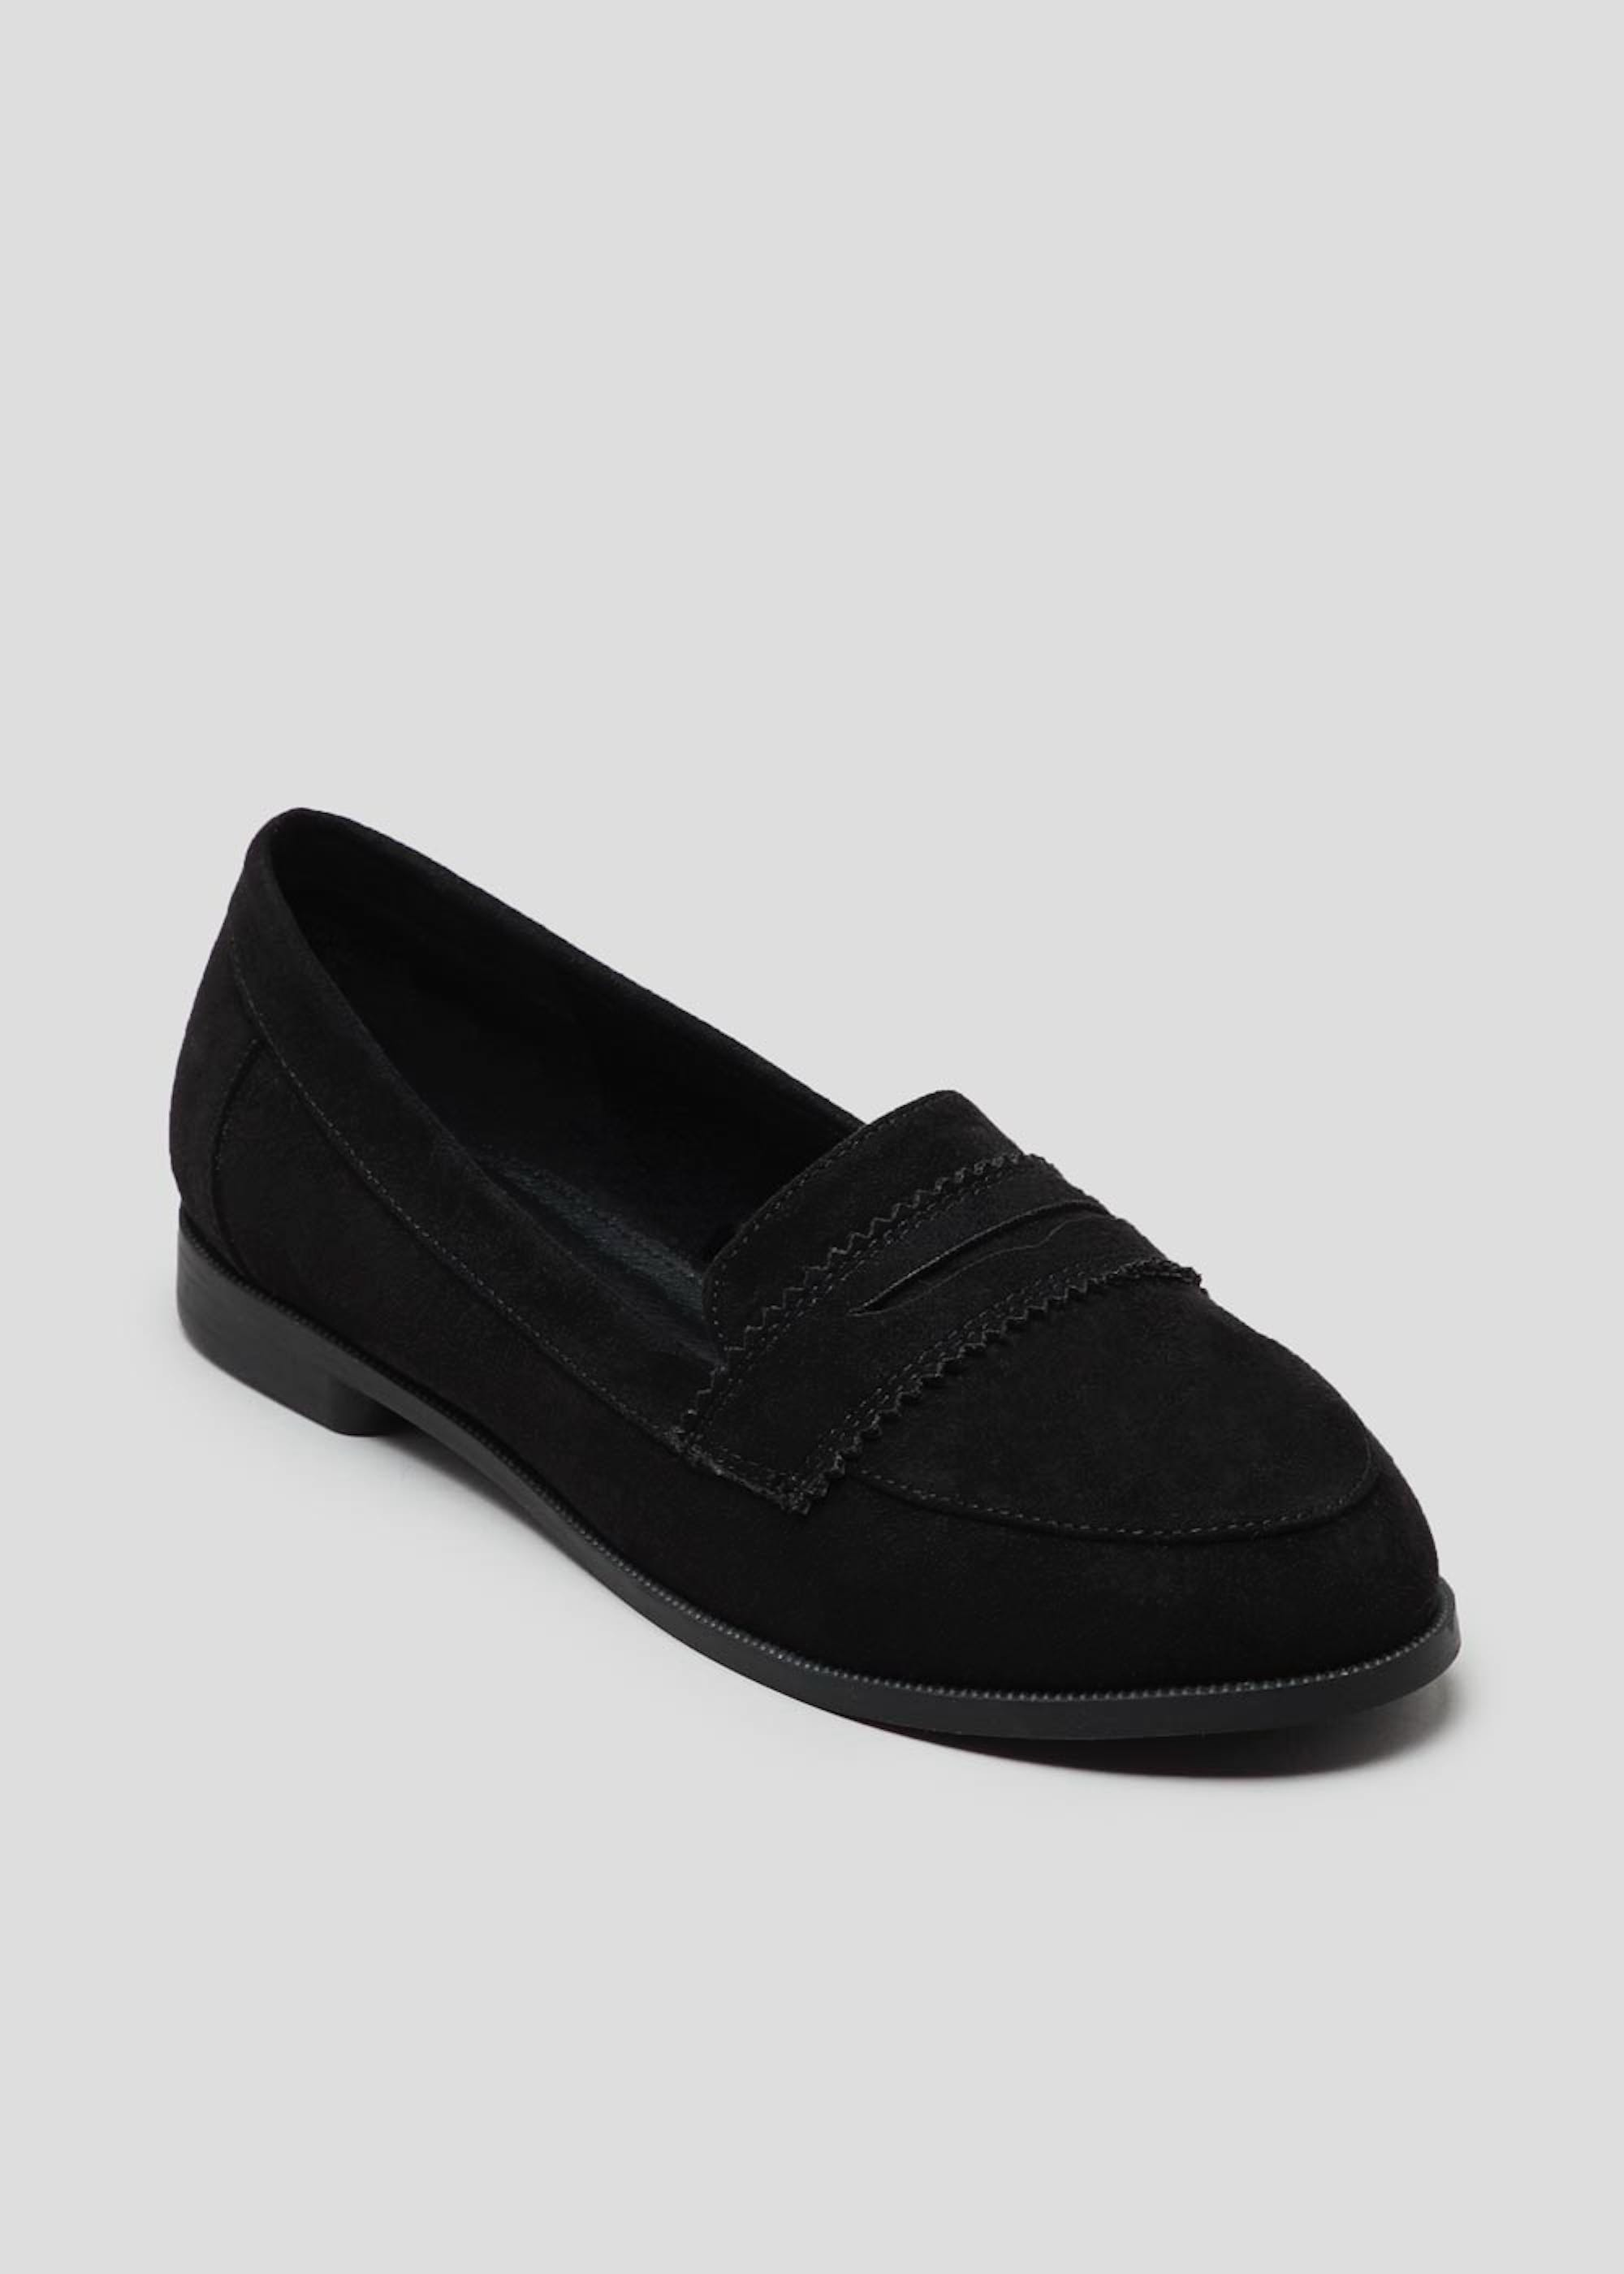 Wide Fit Black Loafers Black 1P2fdC